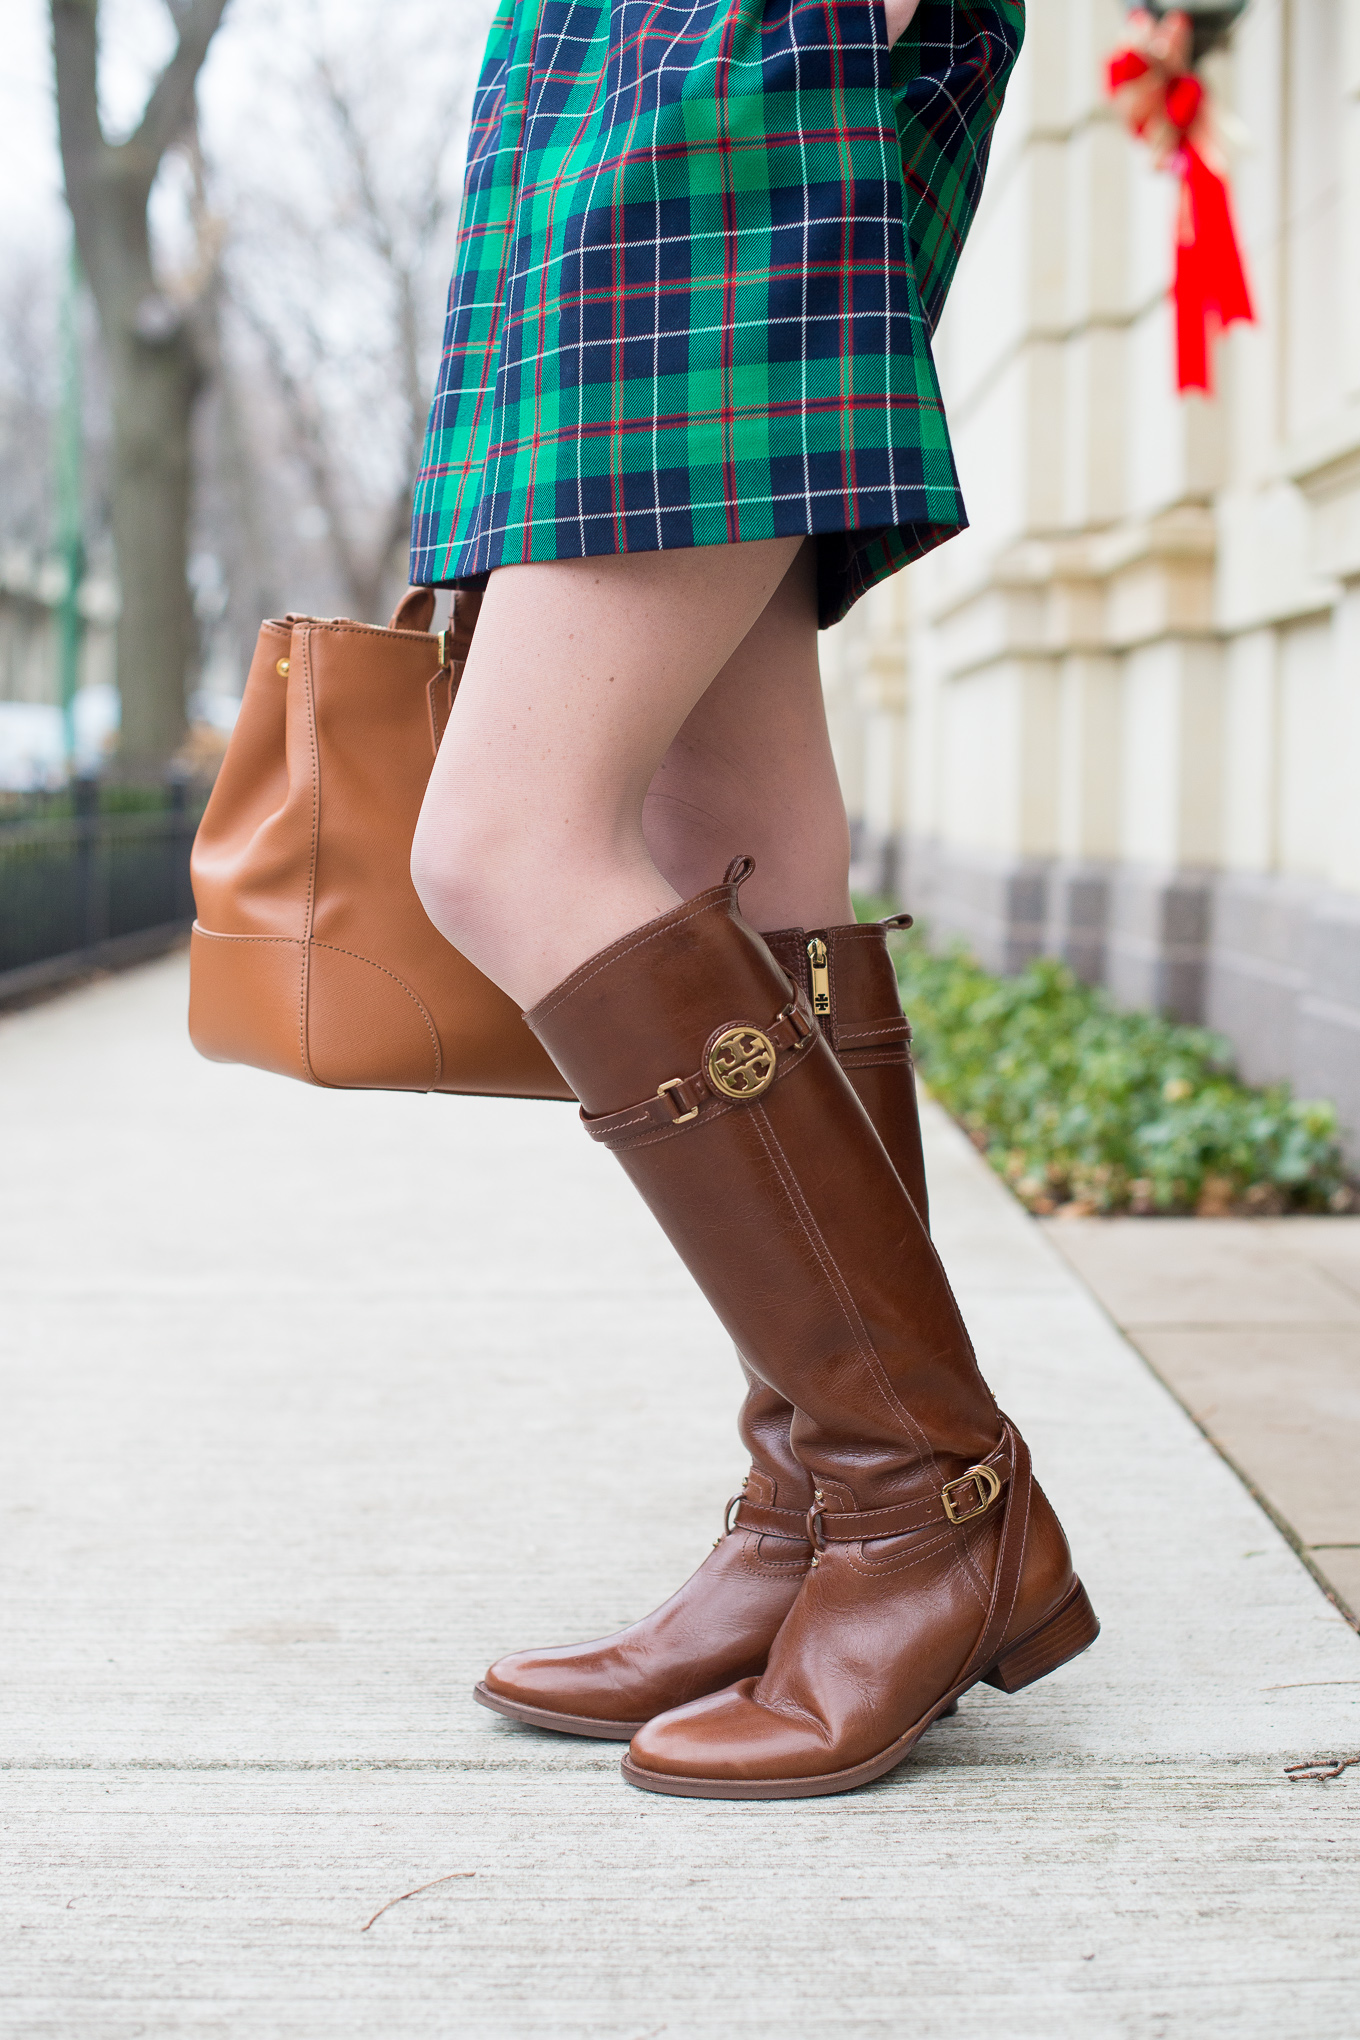 Tory-Burch-Riding-Boots-18